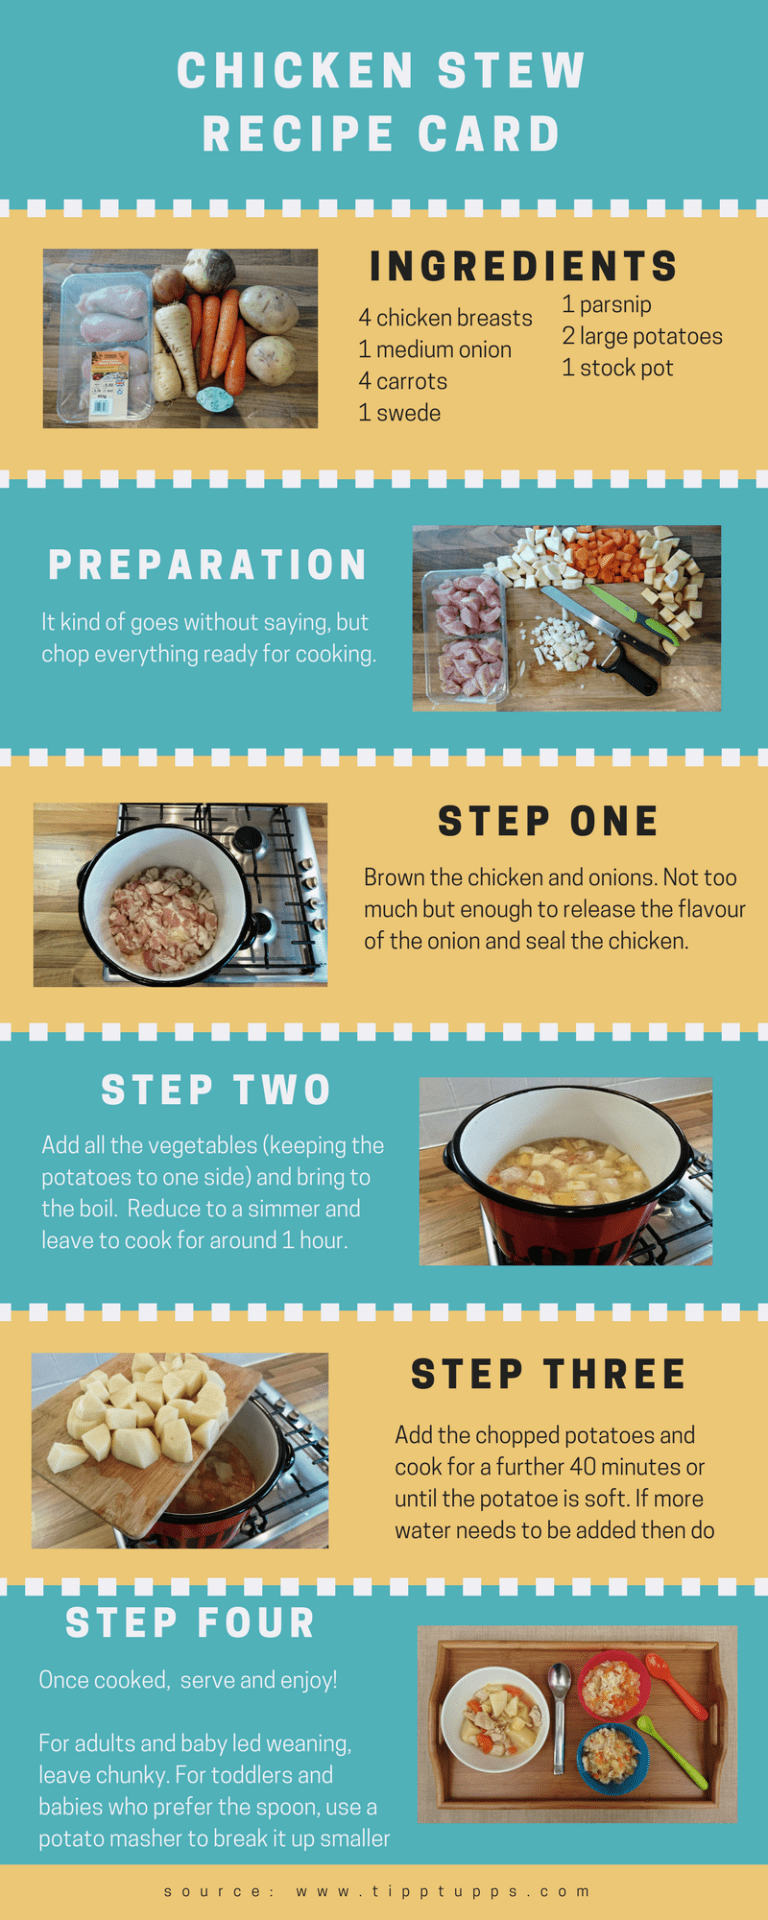 Chicken Stew - recipe card